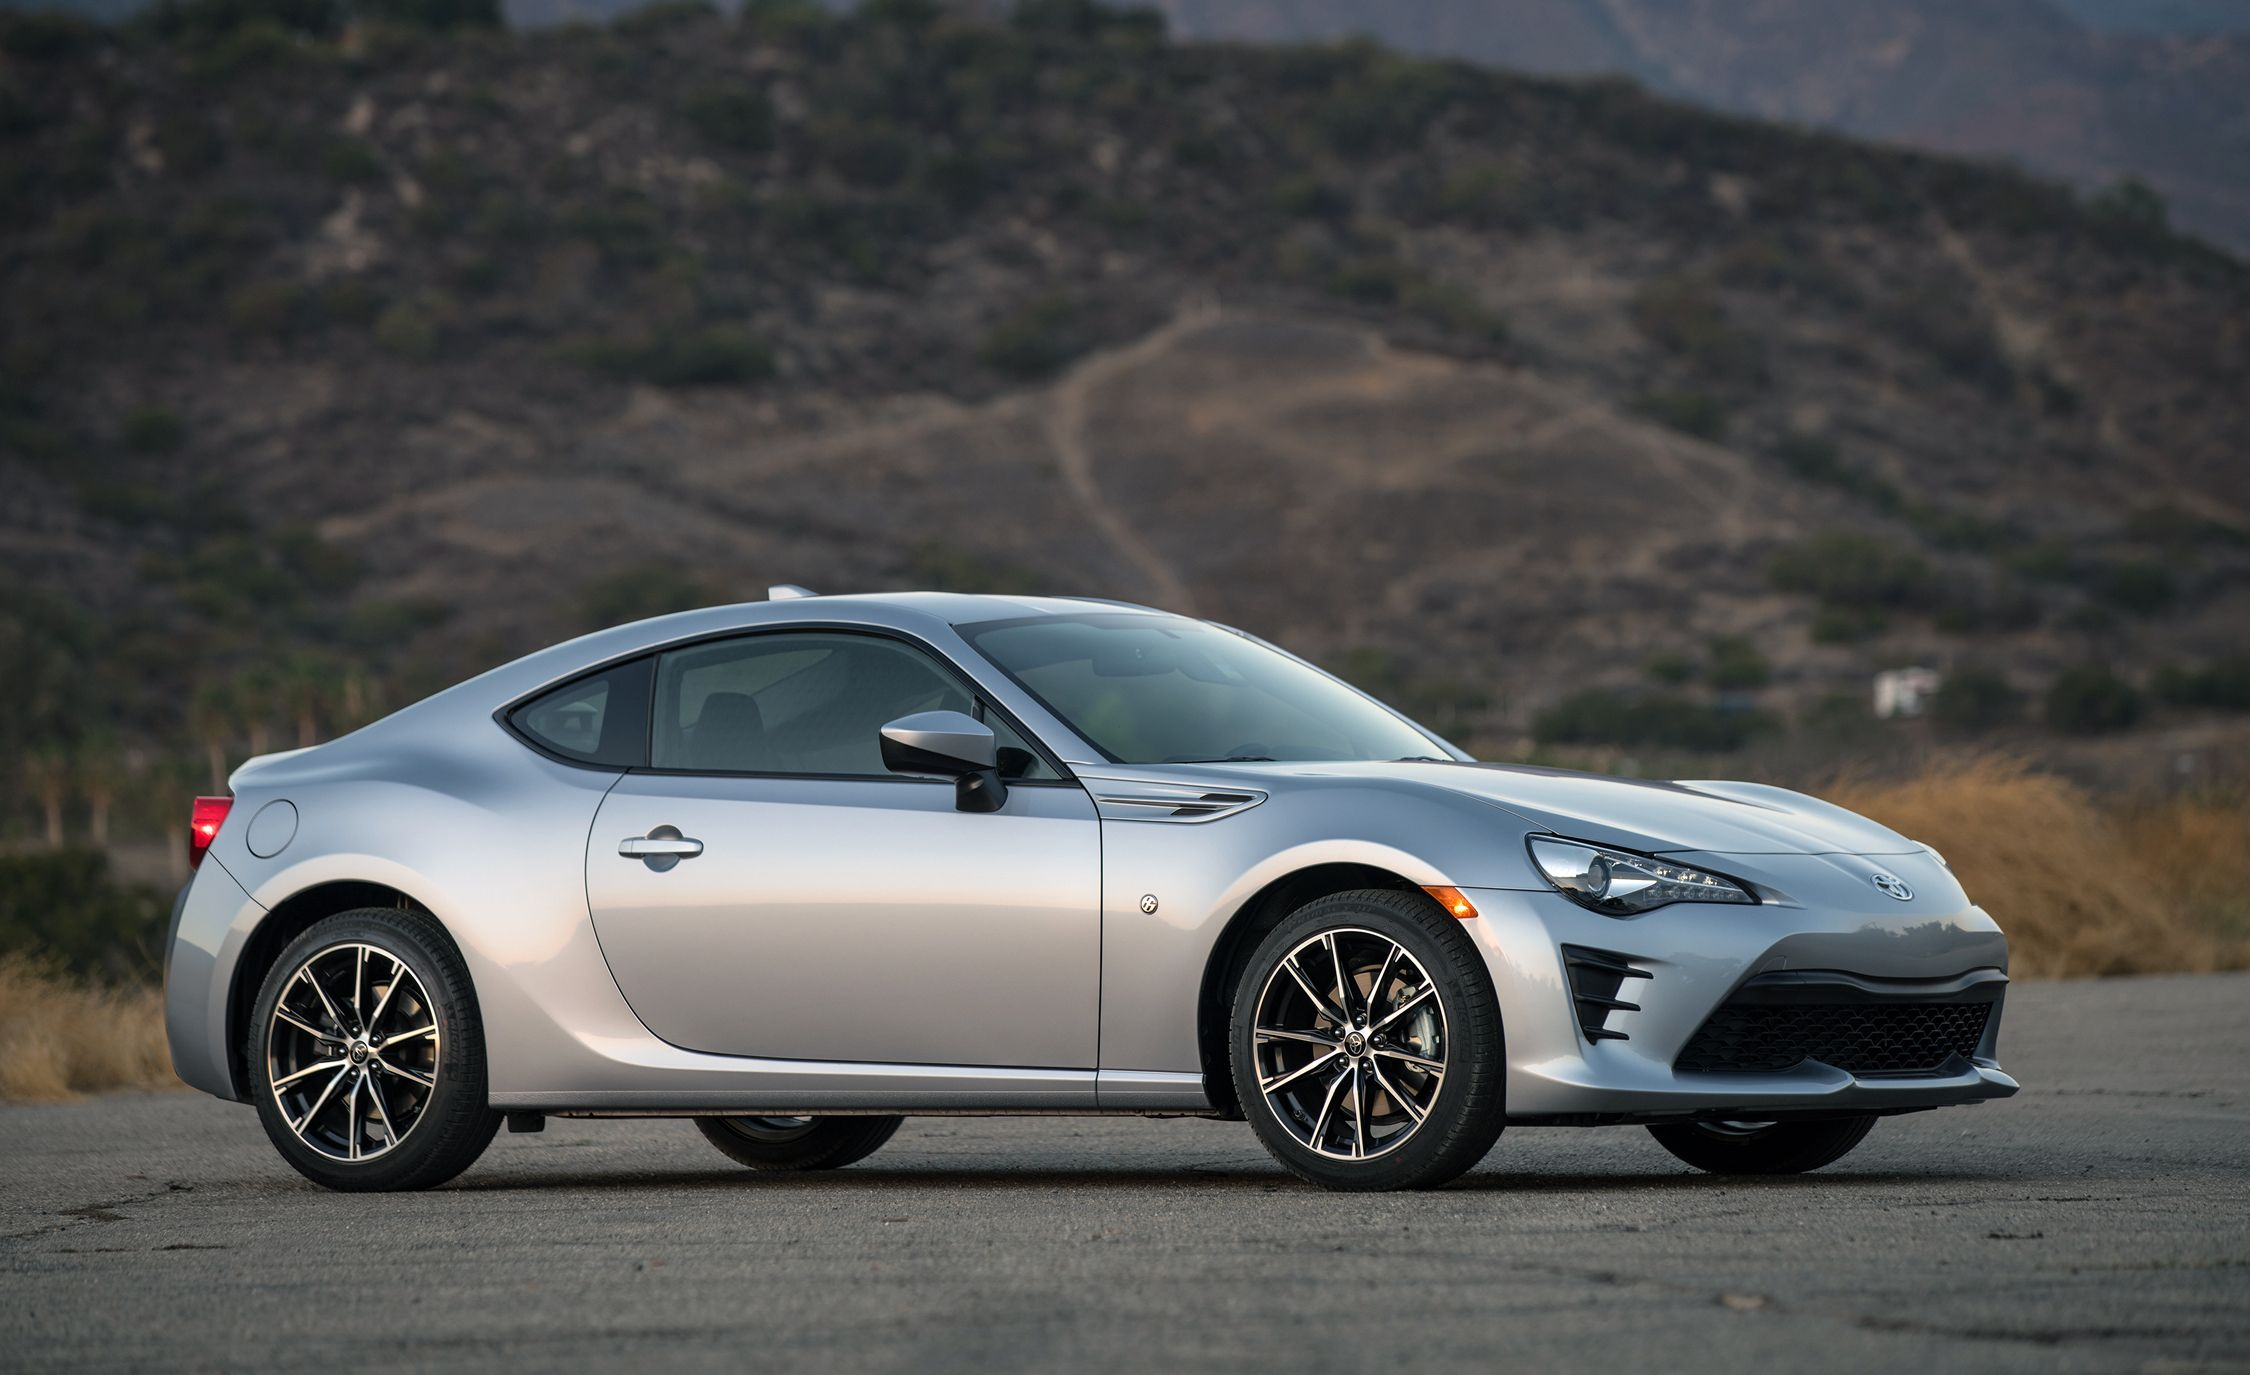 2017 Toyota 86 Manual Tested Review Car And Driver Gt86 Wiring Diagram